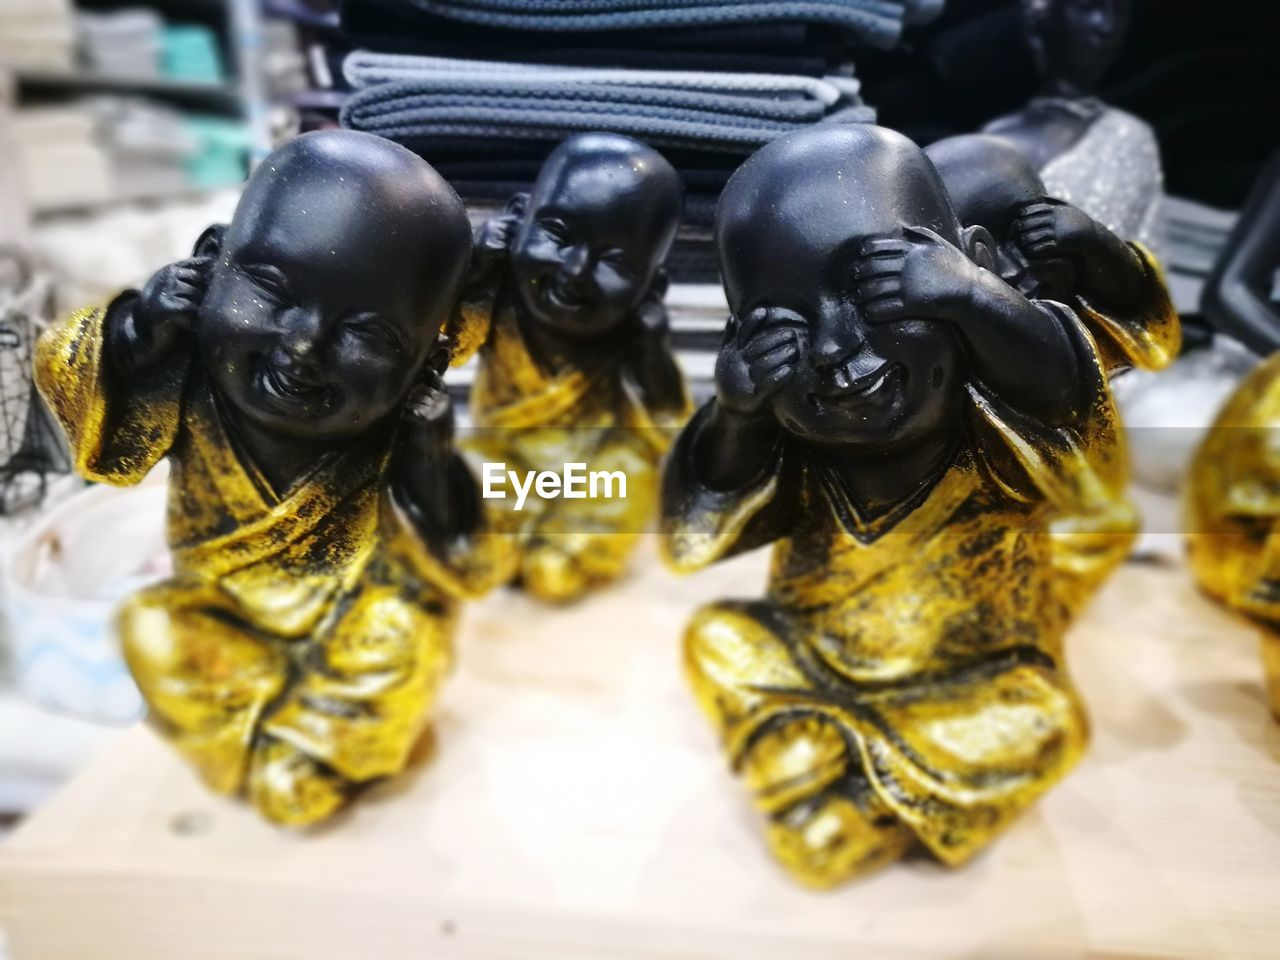 CLOSE-UP OF STATUES IN SHOP